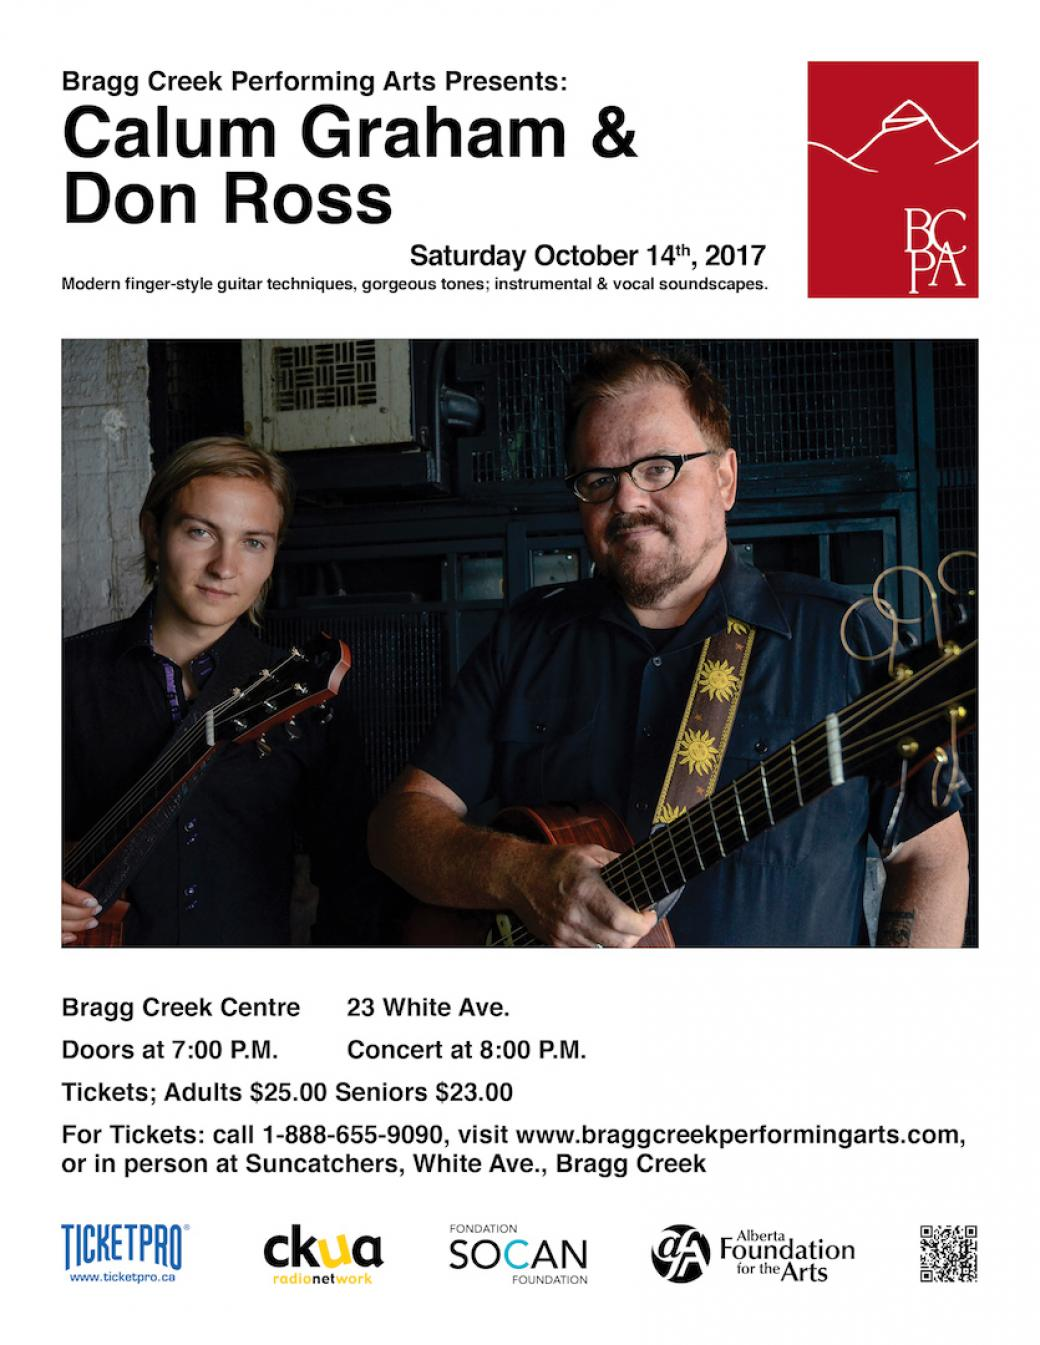 Don Ross and Calum Graham in Concert